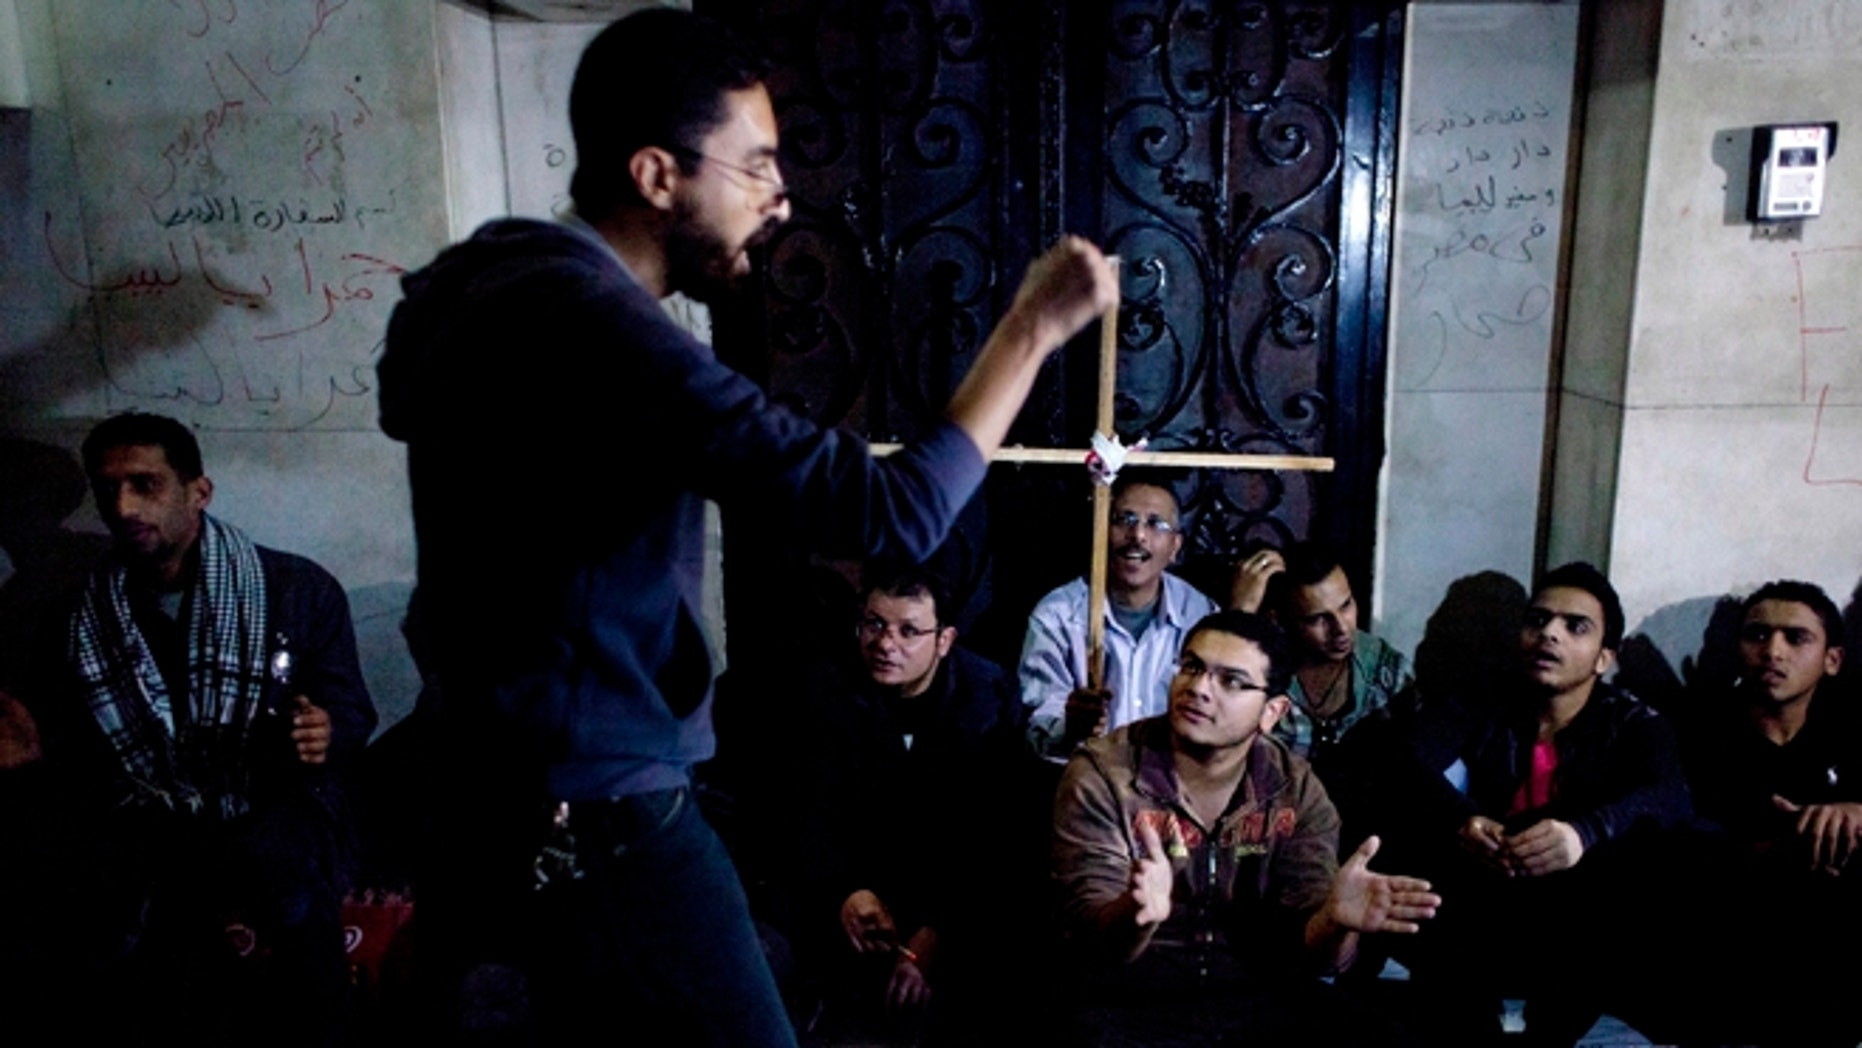 Egyptian protesters sit near Libyan embassy during demonstration condemning the death of Egyptian Christian Ezzat Atallah at a Libyan prison earlier this month. Four Christians remain imprisoned in Libya, including an American (AP Photo/Nasser Nasser)